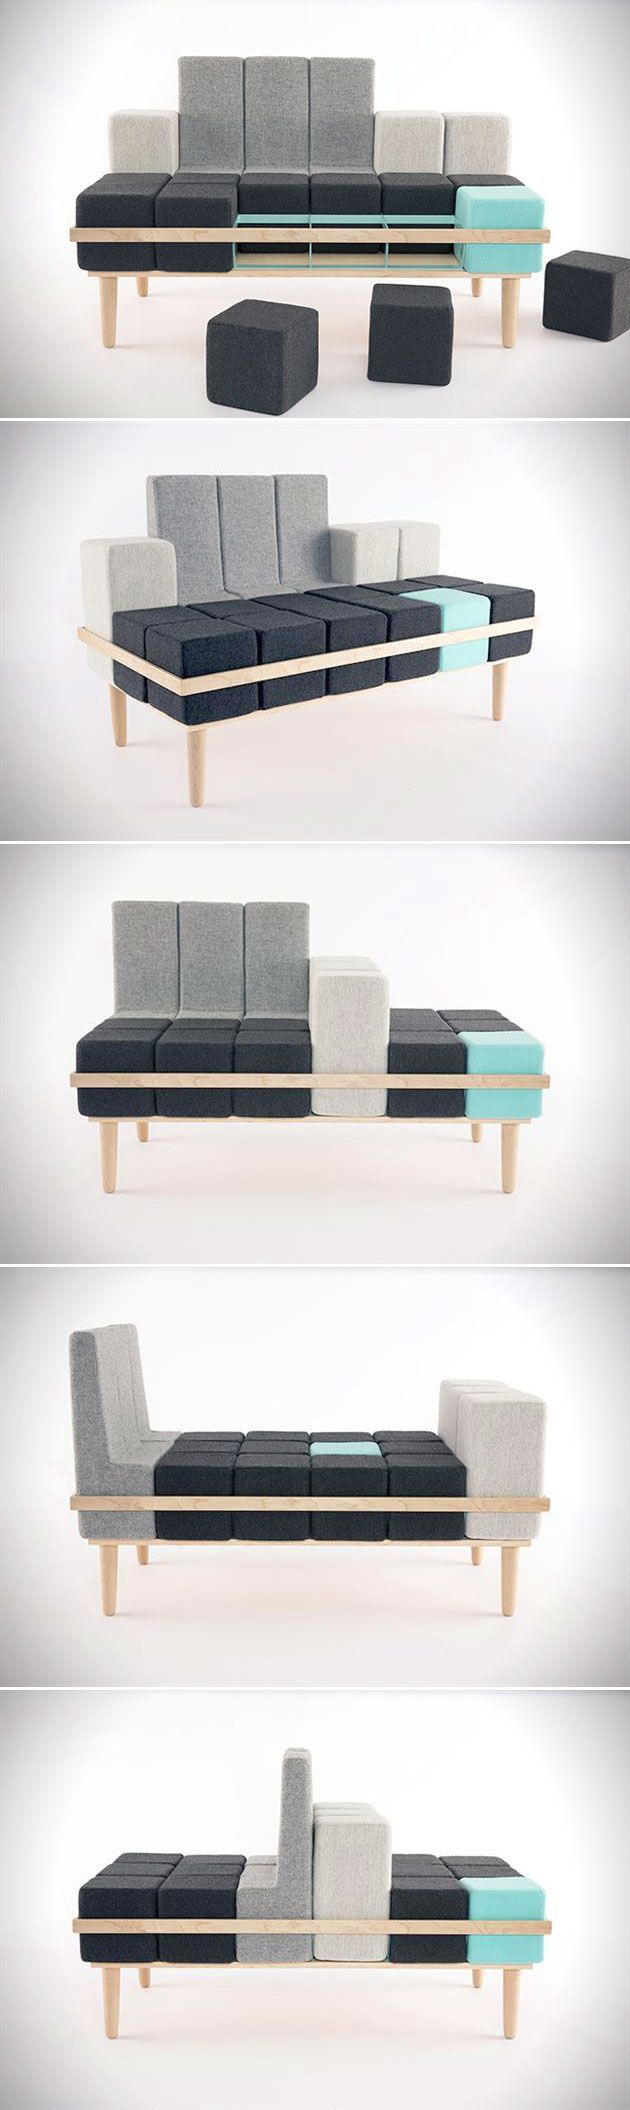 Downtown living has its perks, but you better believe that space is a rare commodity. In order to combat the lack of excess space, we are constantly on the search for furniture, and design pieces that will enhance our living space like the Bloc'd Sofa.  This modular couch was inspired by one of our favorite childhood video games, Tetris. The soft maple and steel frame allows the 18 foam cushions to be set up in a number of different configurations